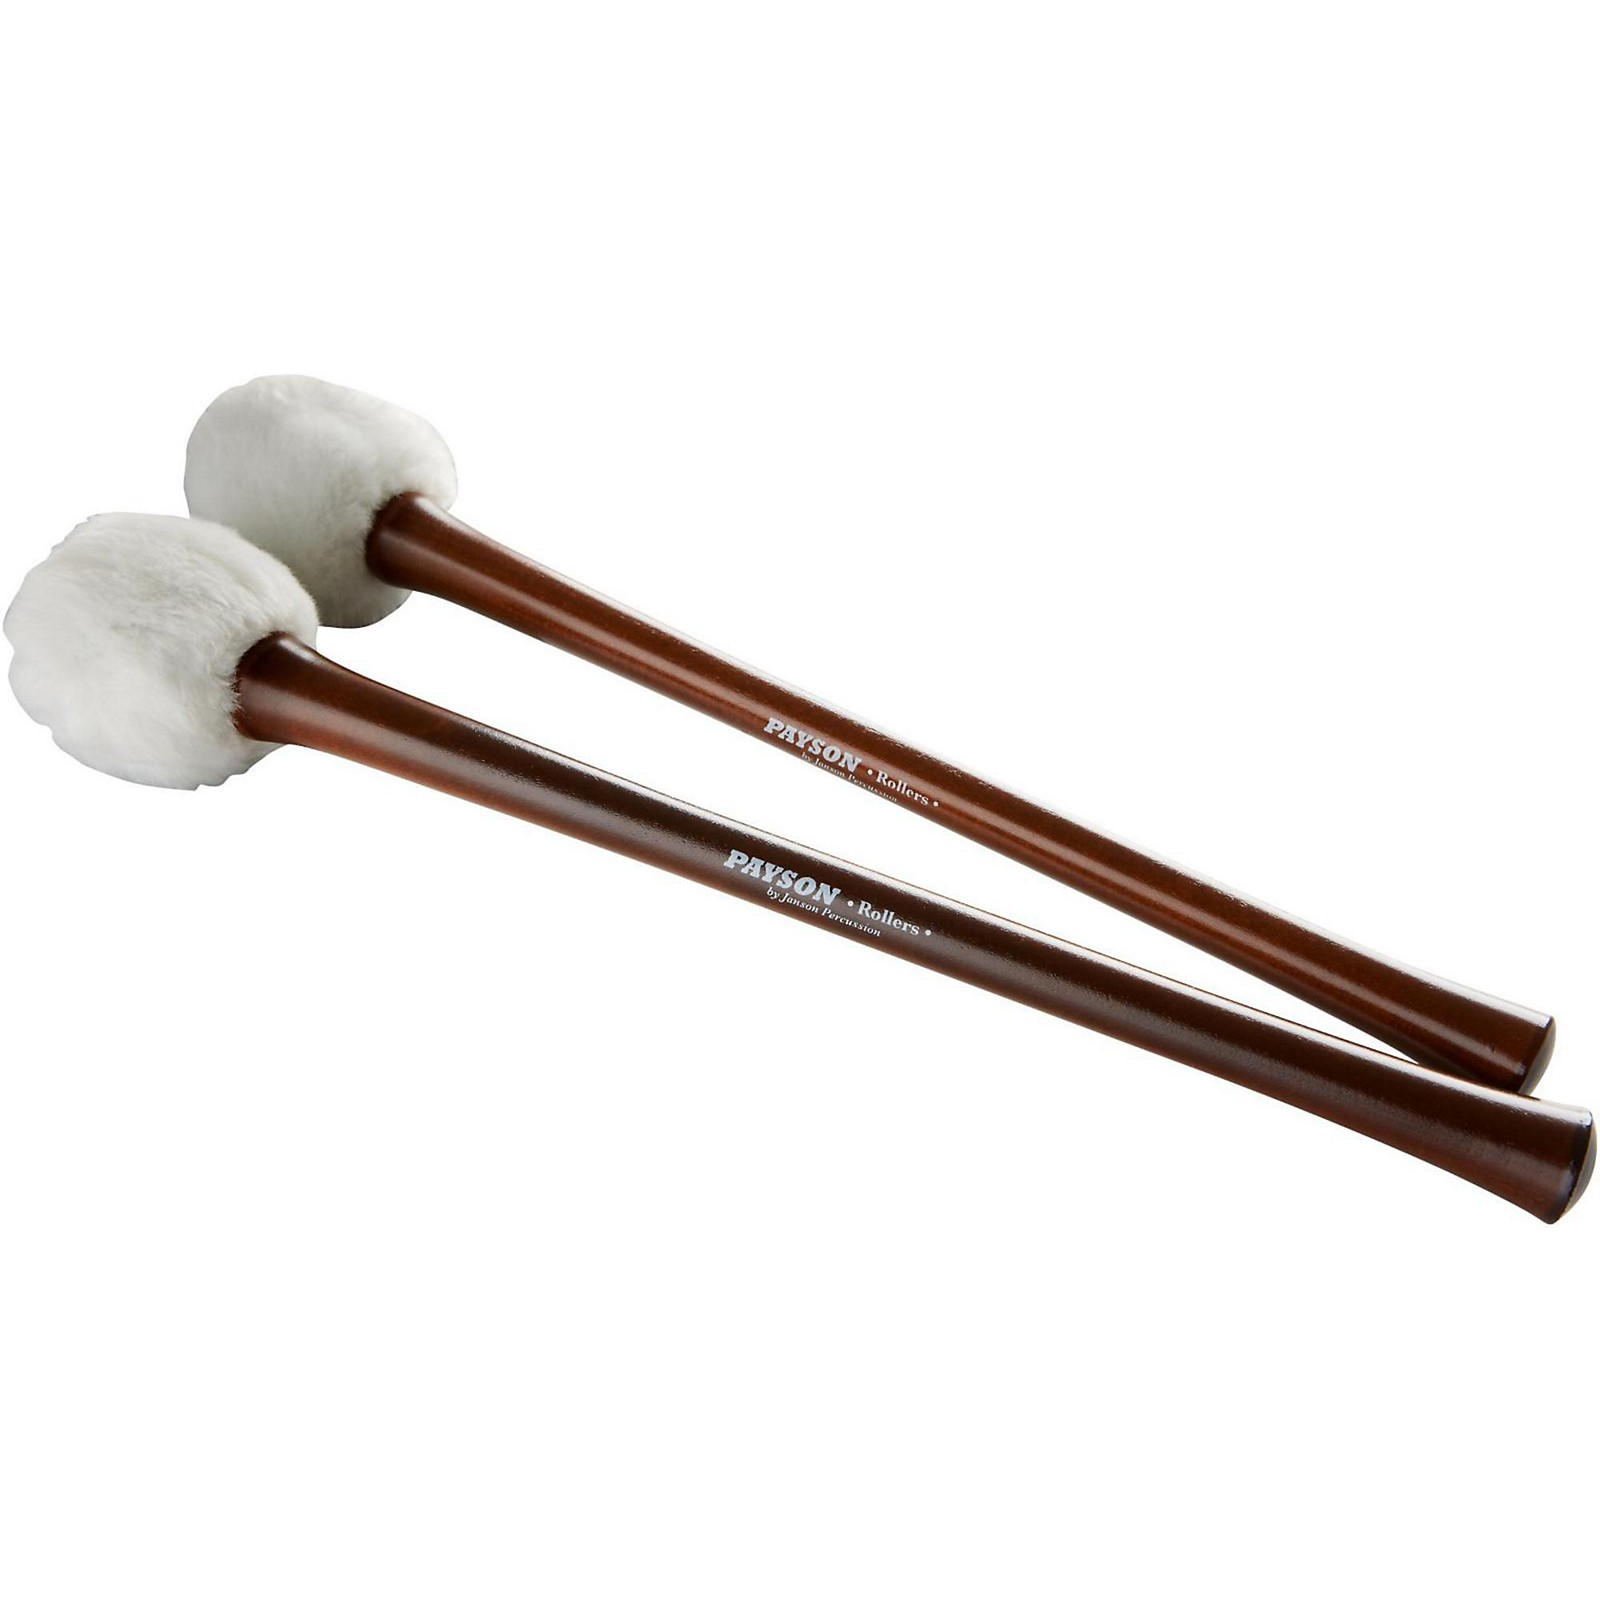 Ludwig Payson Concert Bass Drum Mallet